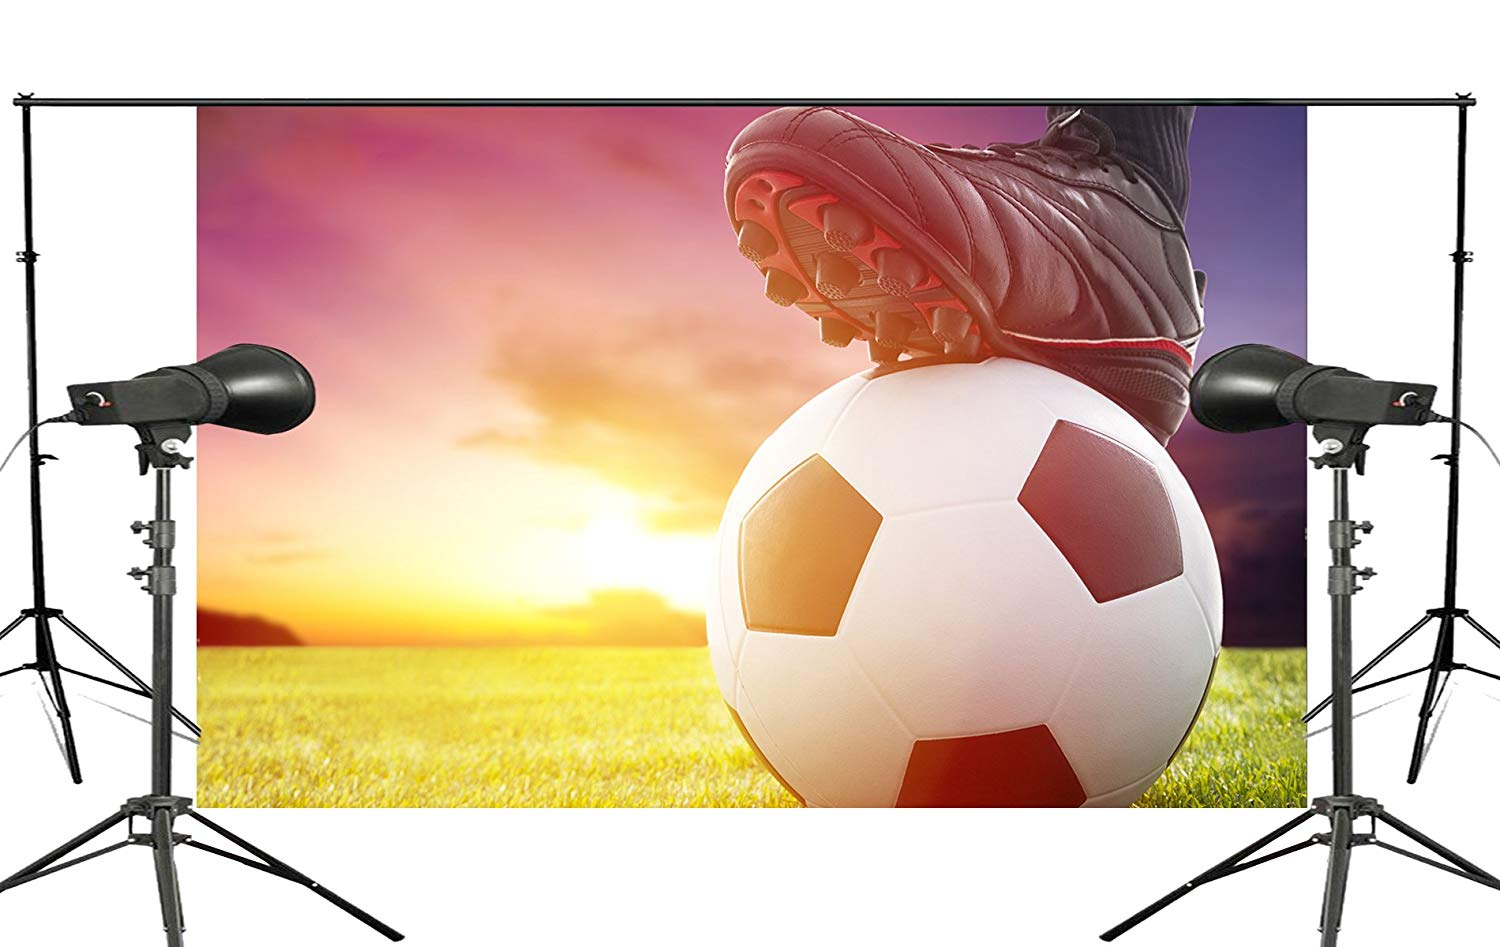 Sunny Lawn Background Football Player Ready Scene Studio Photography Background Football Hobby Sports Wallpaper 150x220cm in Photo Studio Accessories from Consumer Electronics